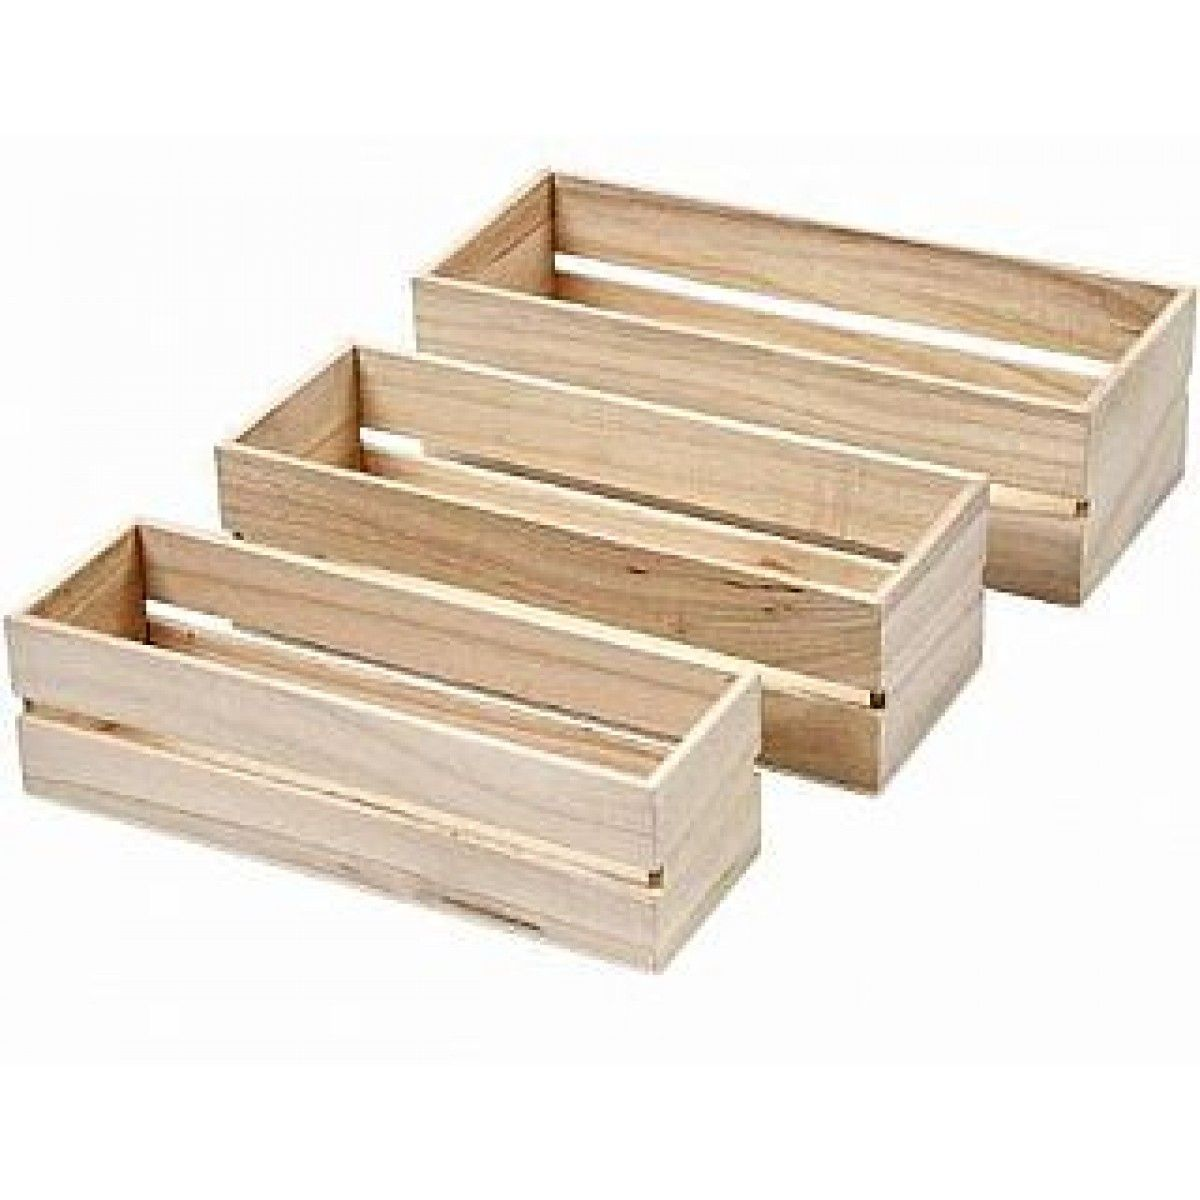 Wooden Craft Boxes To Decorate Three Nesting Fruit Crate Style Wood Boxes To Decorate  Kitchen